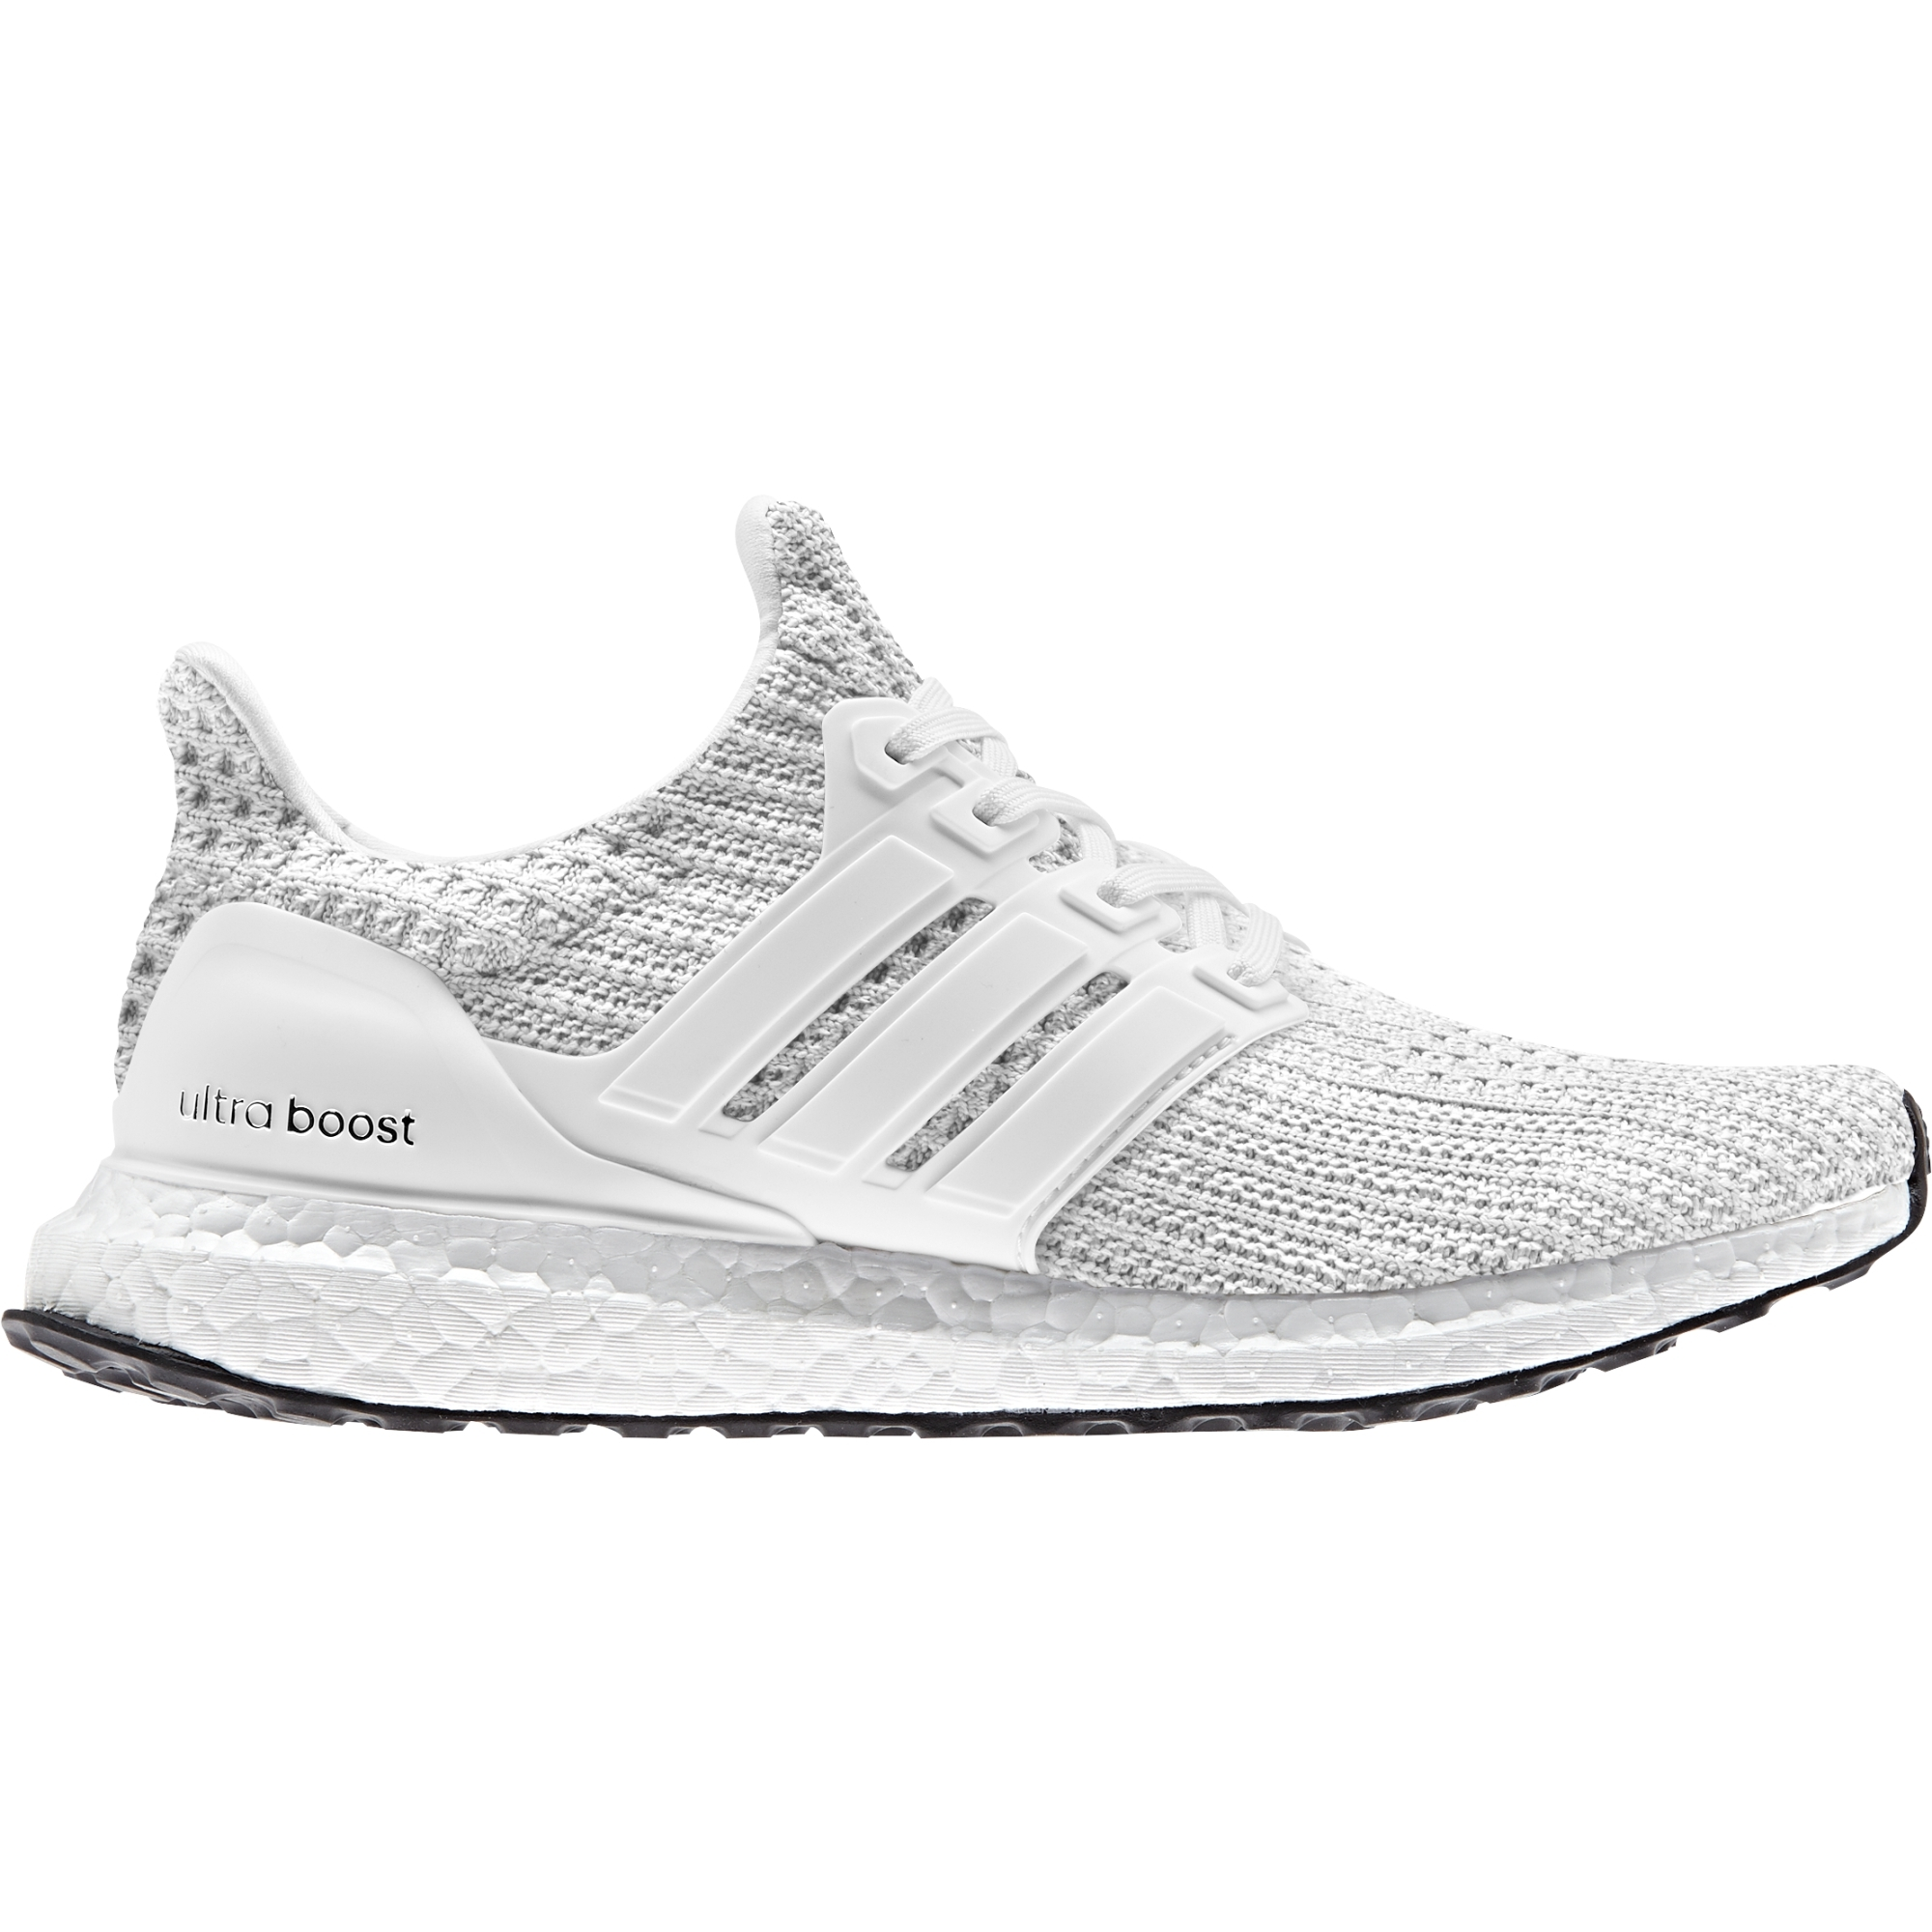 wide range super quality innovative design adidas Women's Ultra Boost Running Shoes